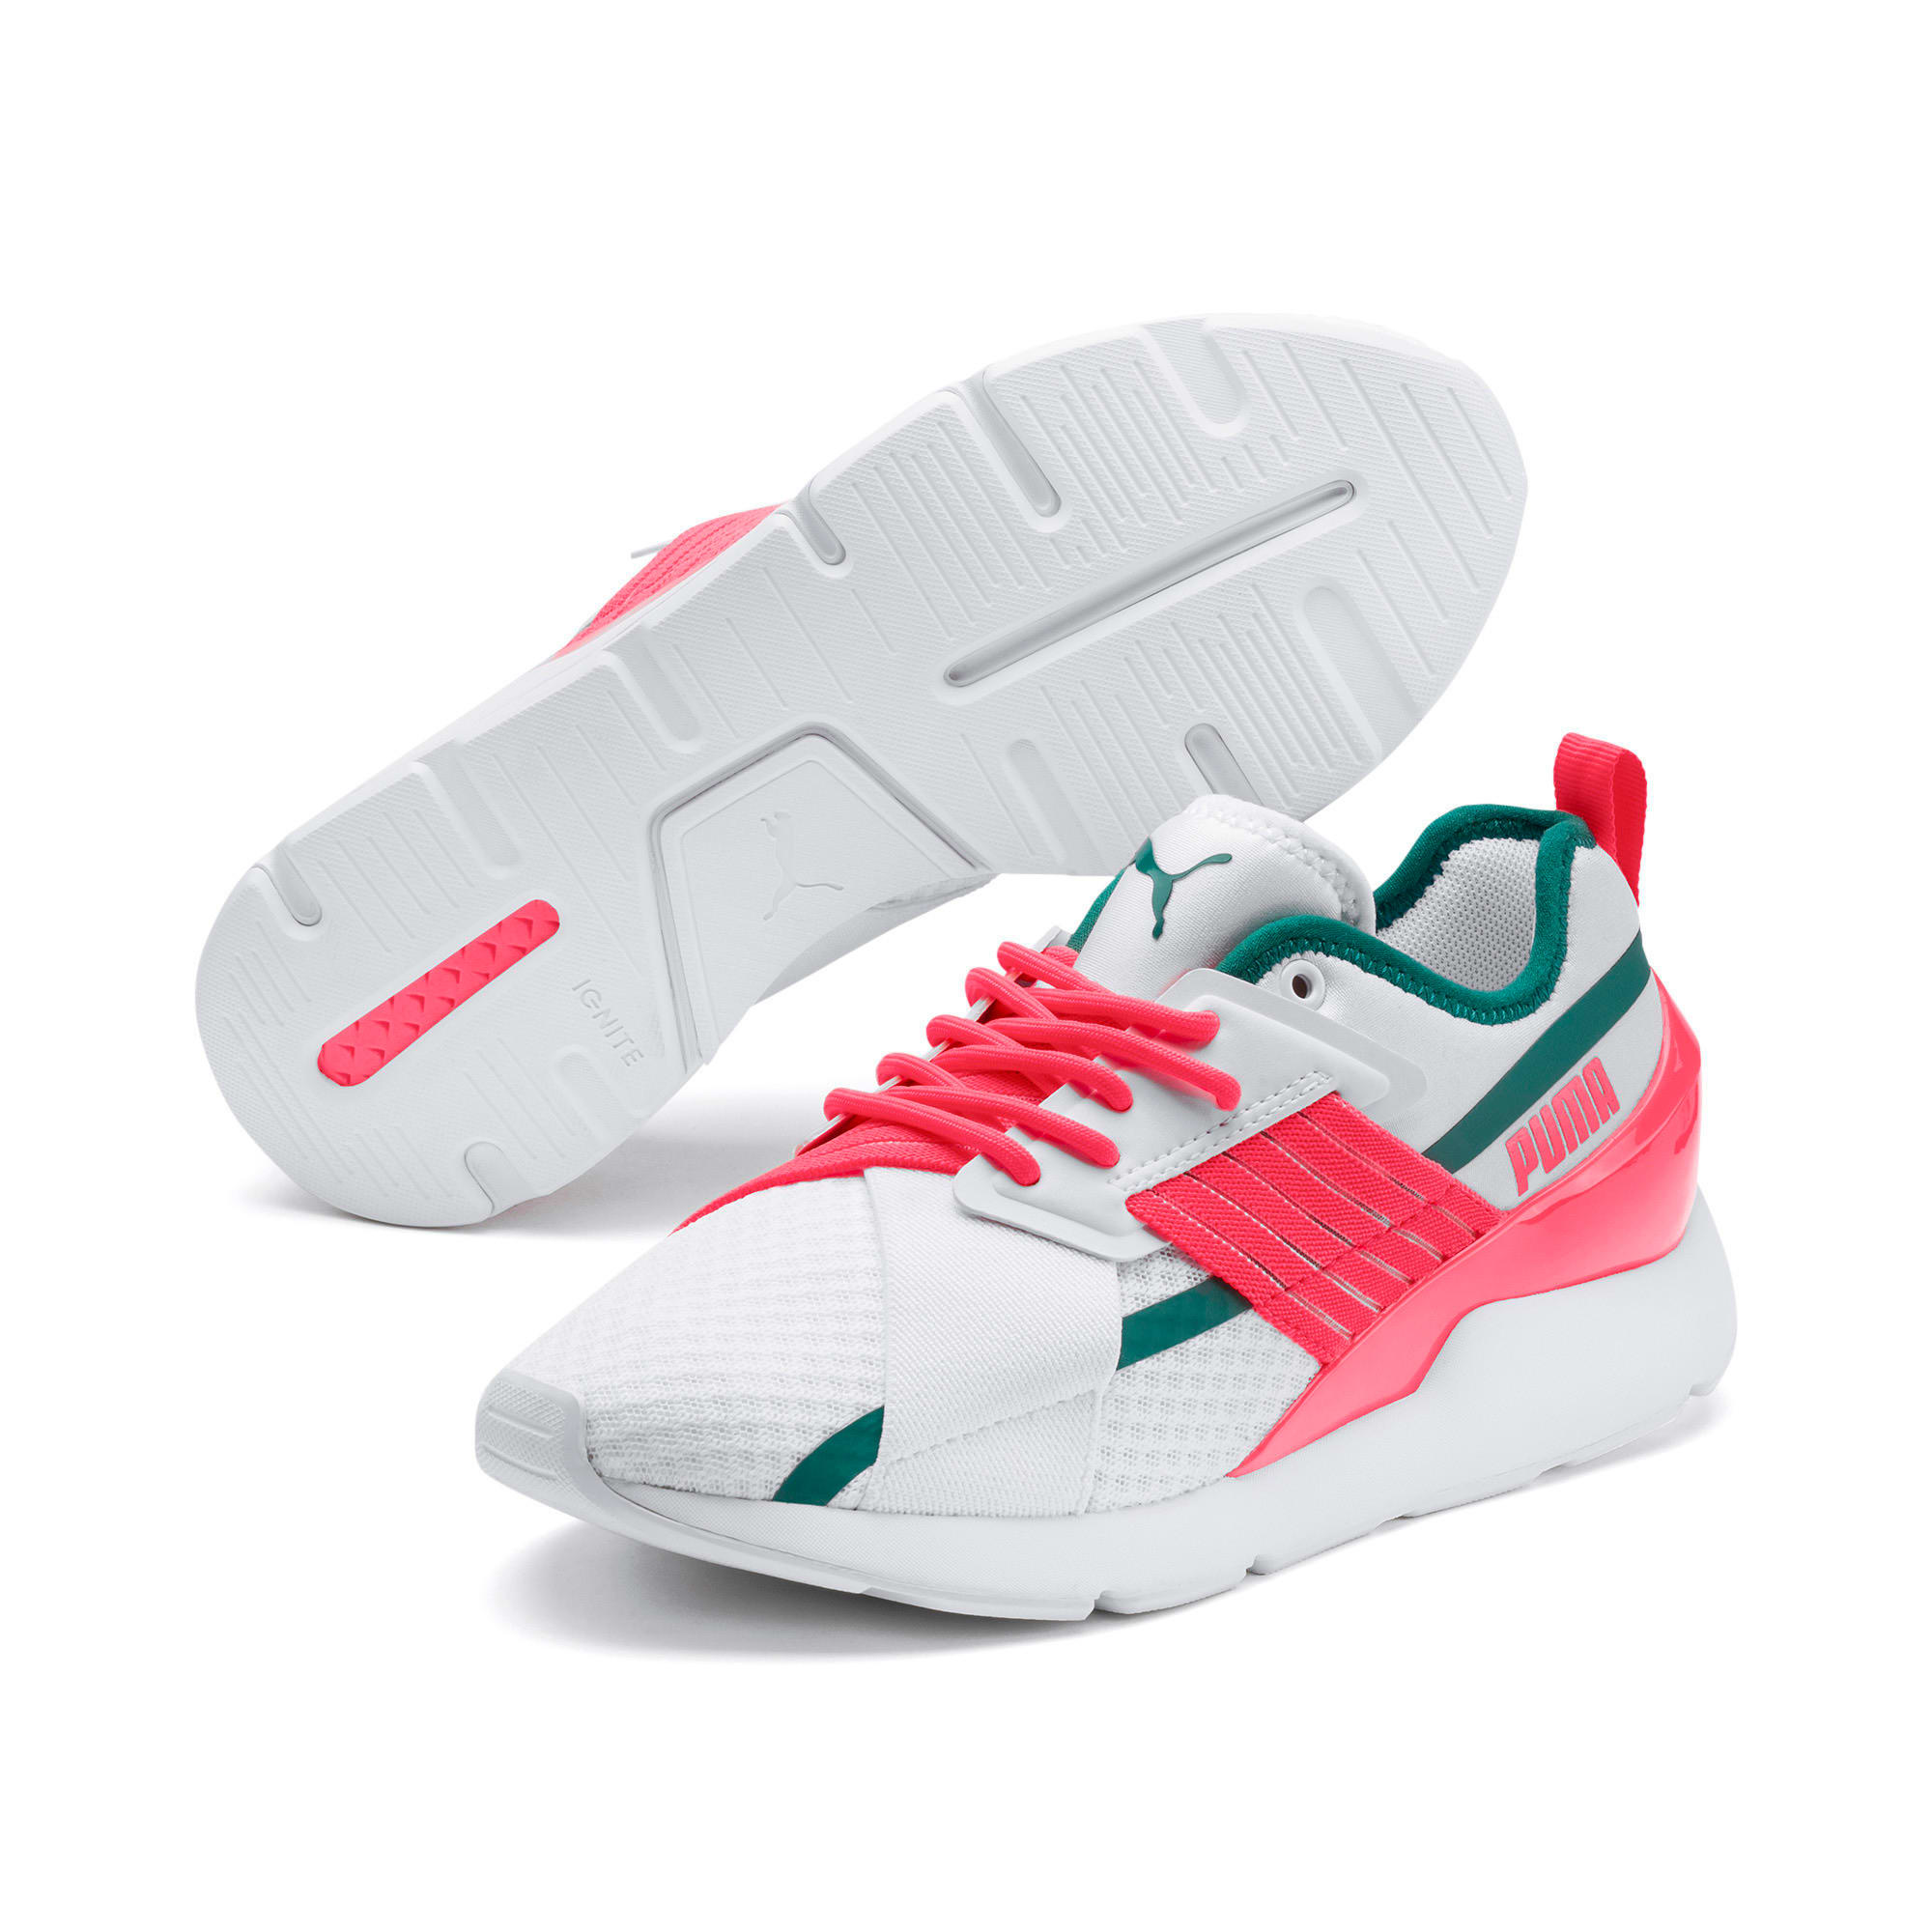 Thumbnail 8 of Muse X-2 Women's Trainers, Puma White-Pink Alert, medium-IND